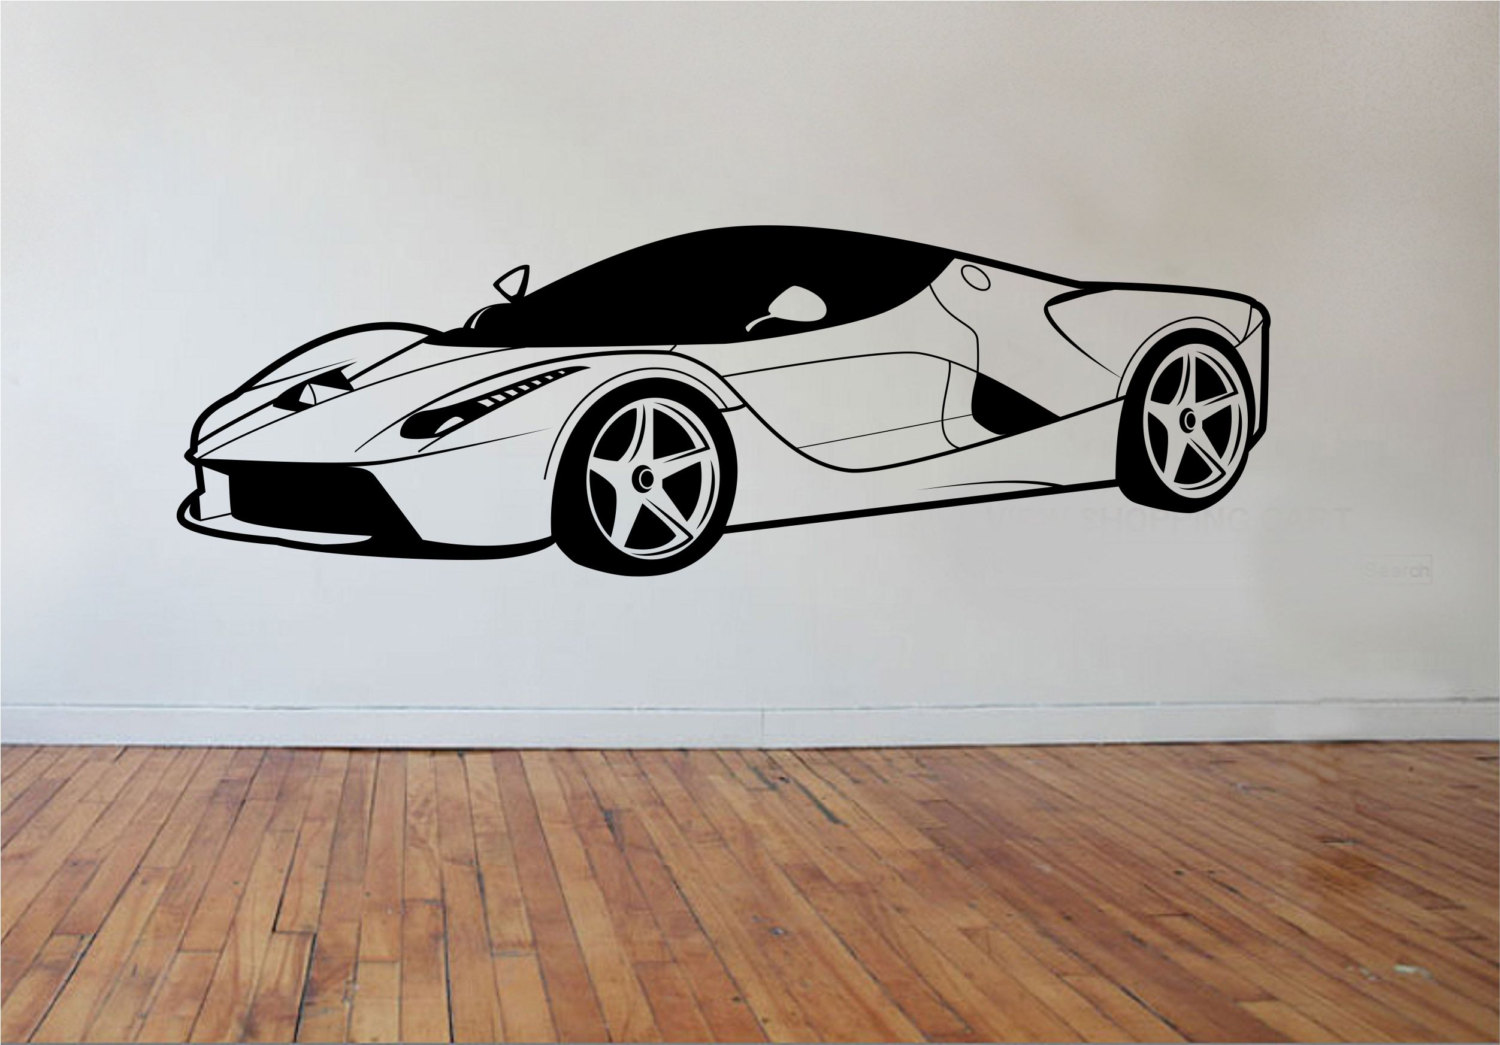 Sports car wall decal version 2 vinyl sticker art decor for Cars wall mural sticker